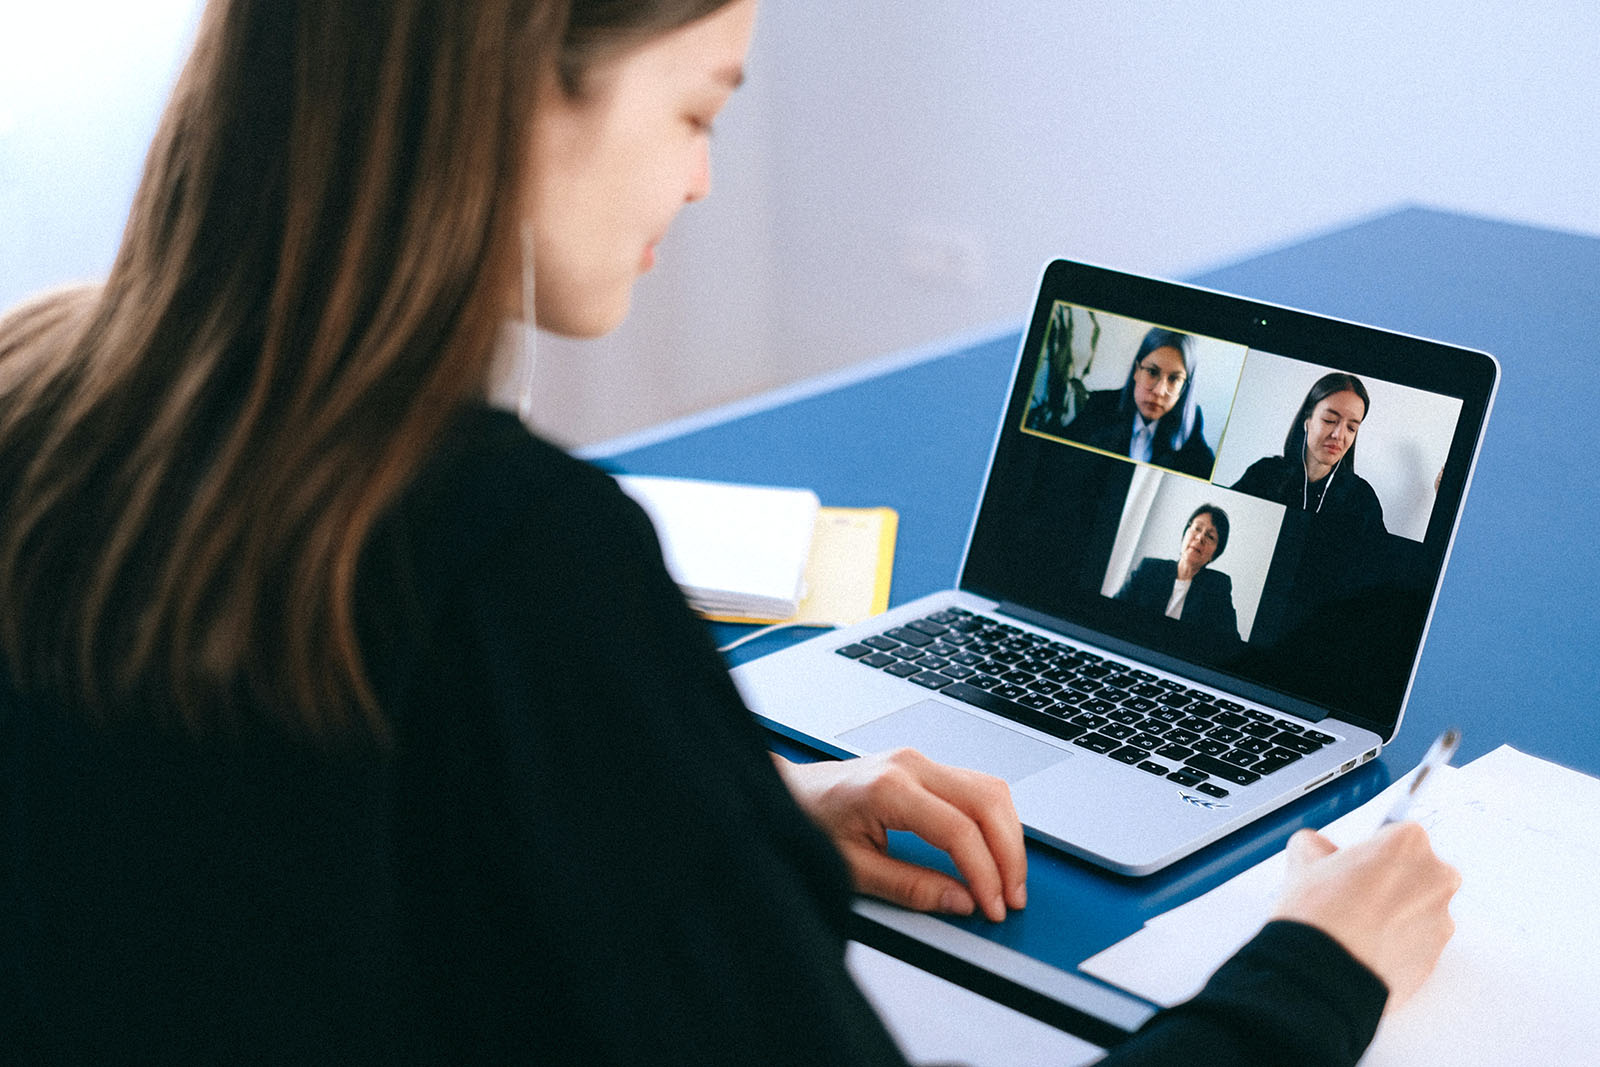 A video conference call taking place on a laptop.